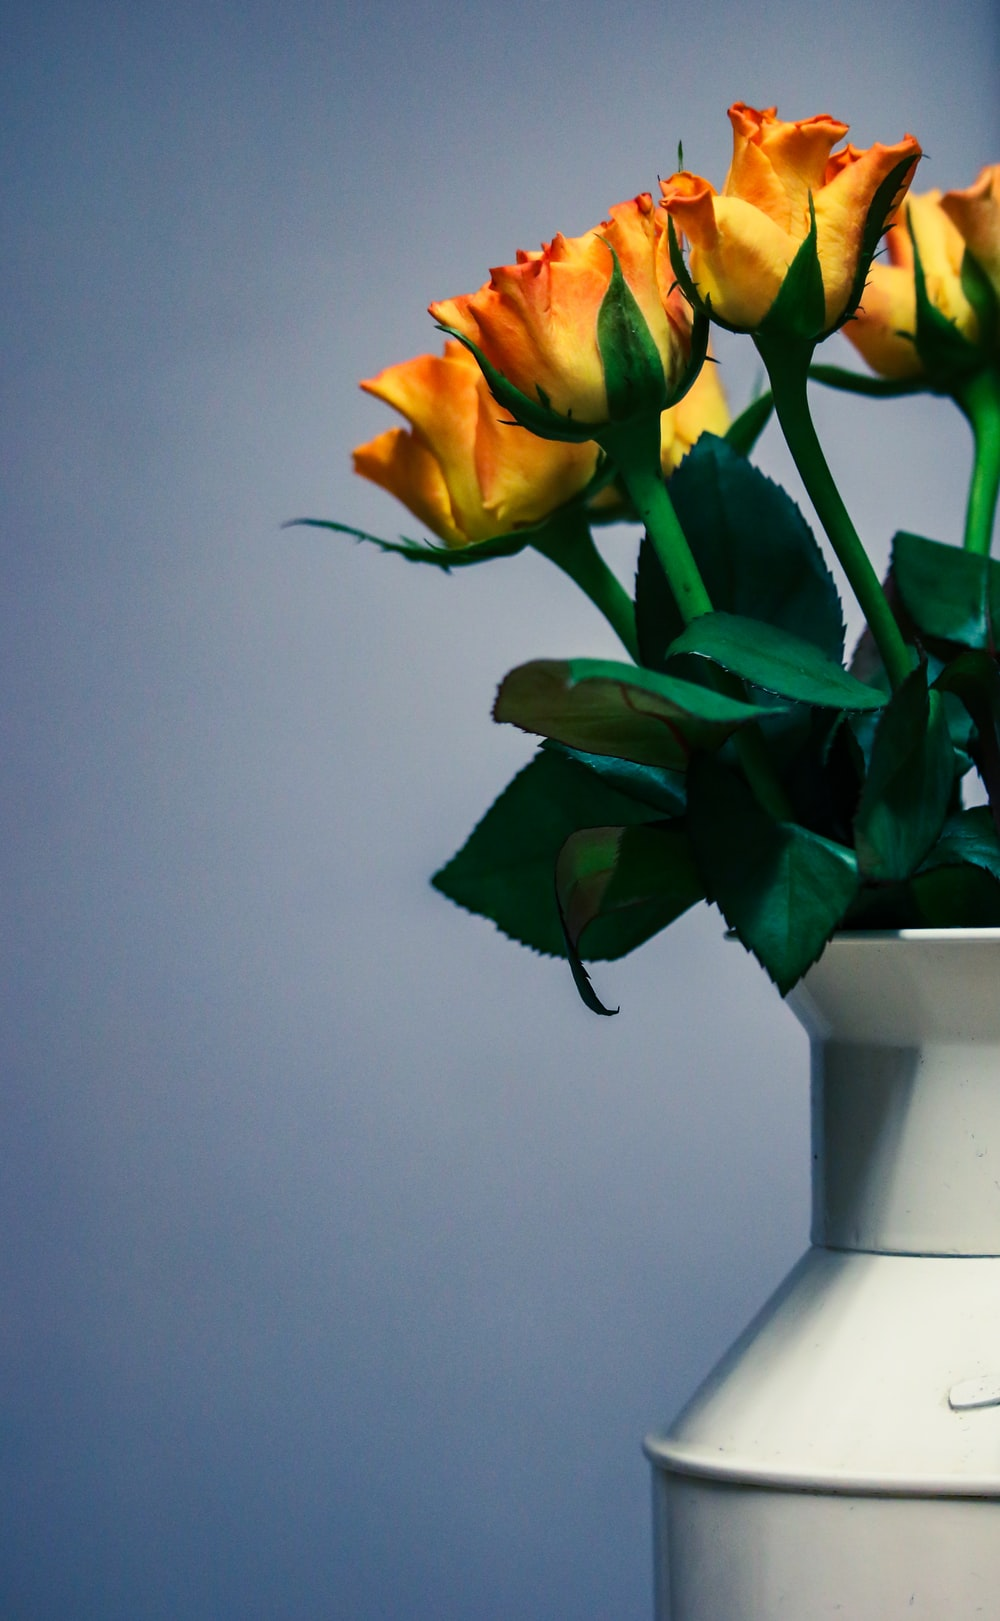 yellow, red, and green flowers on vase